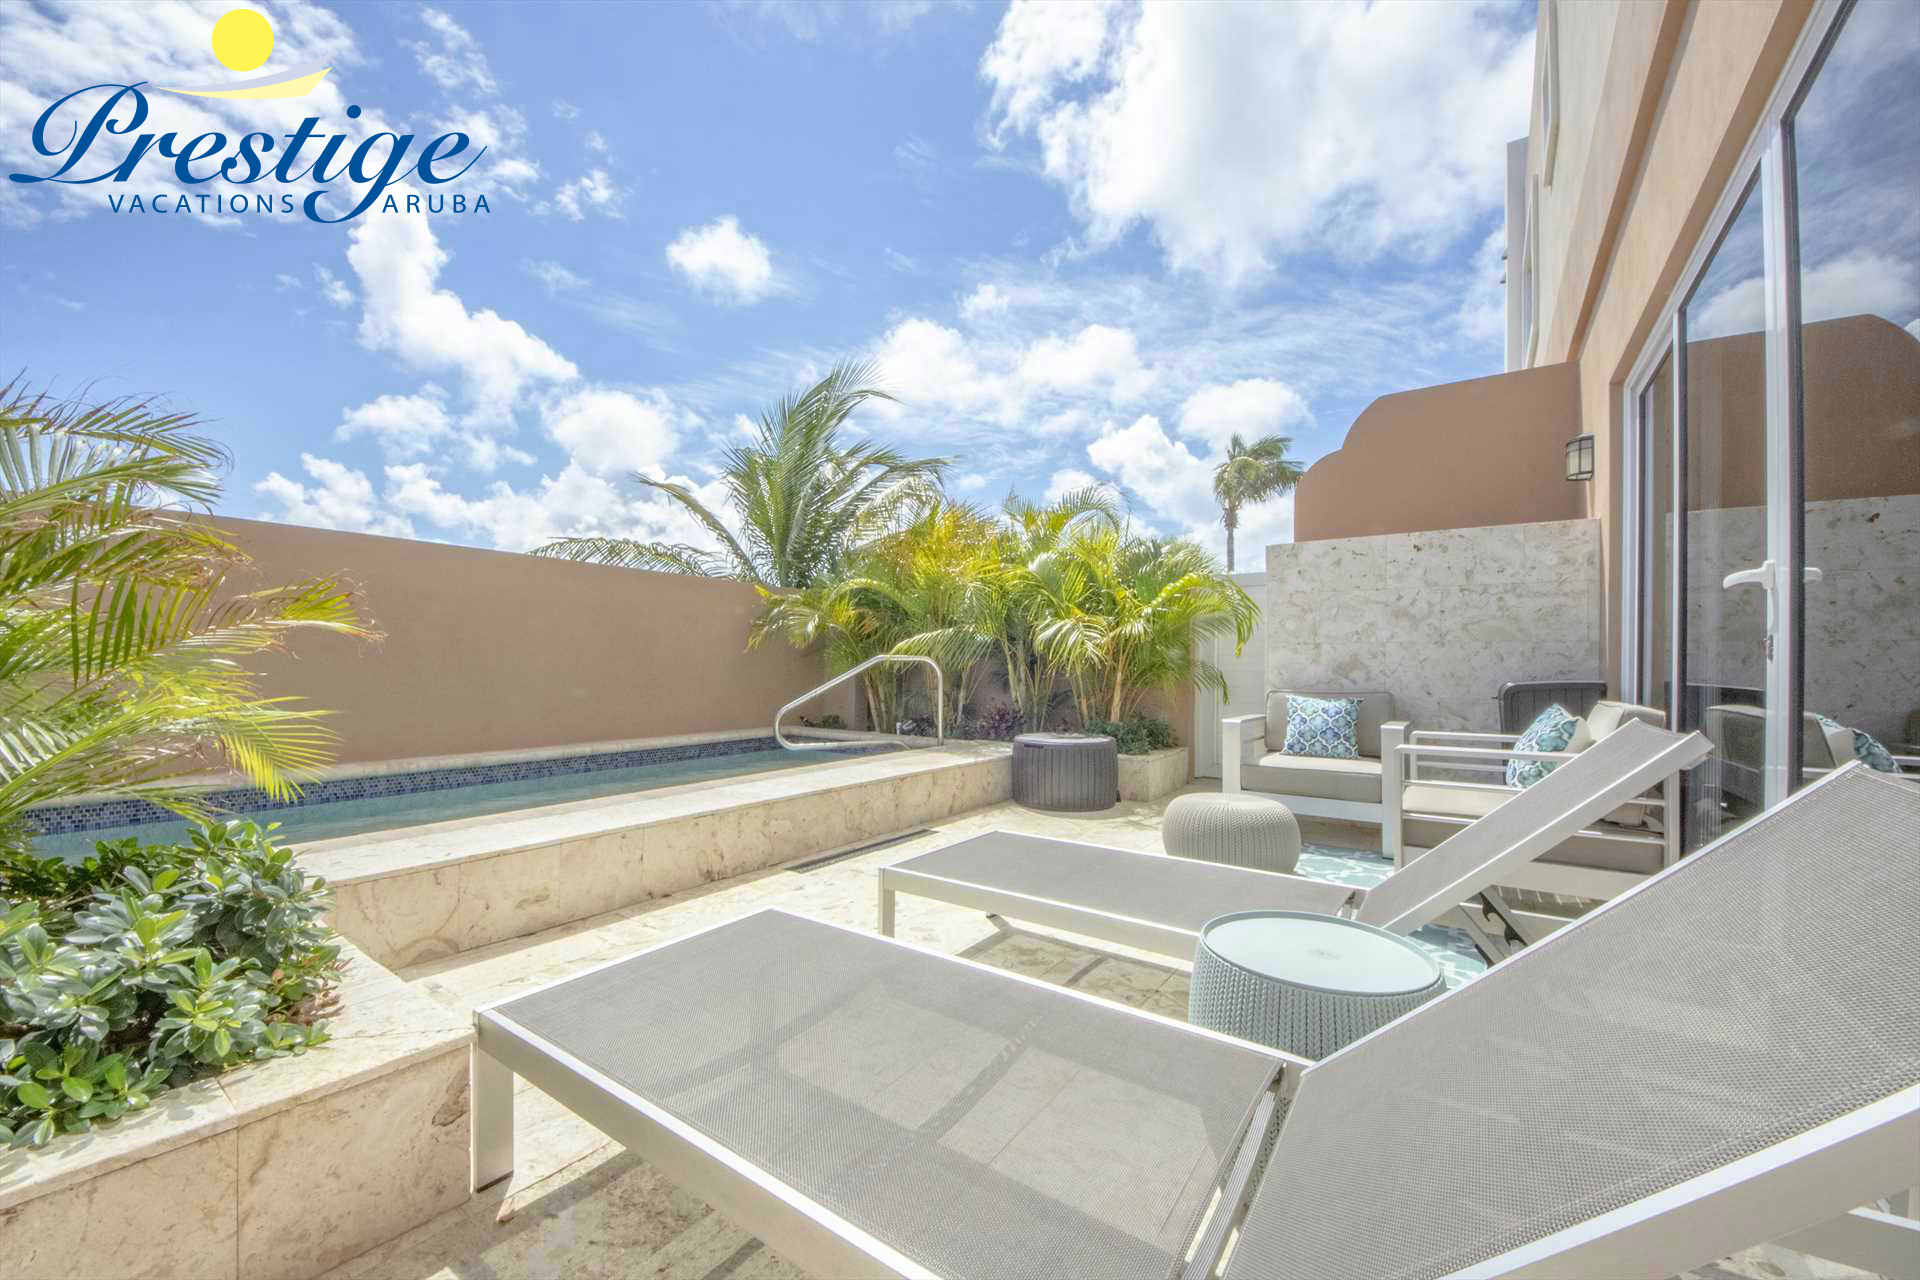 Your private back patio with a swimming pool